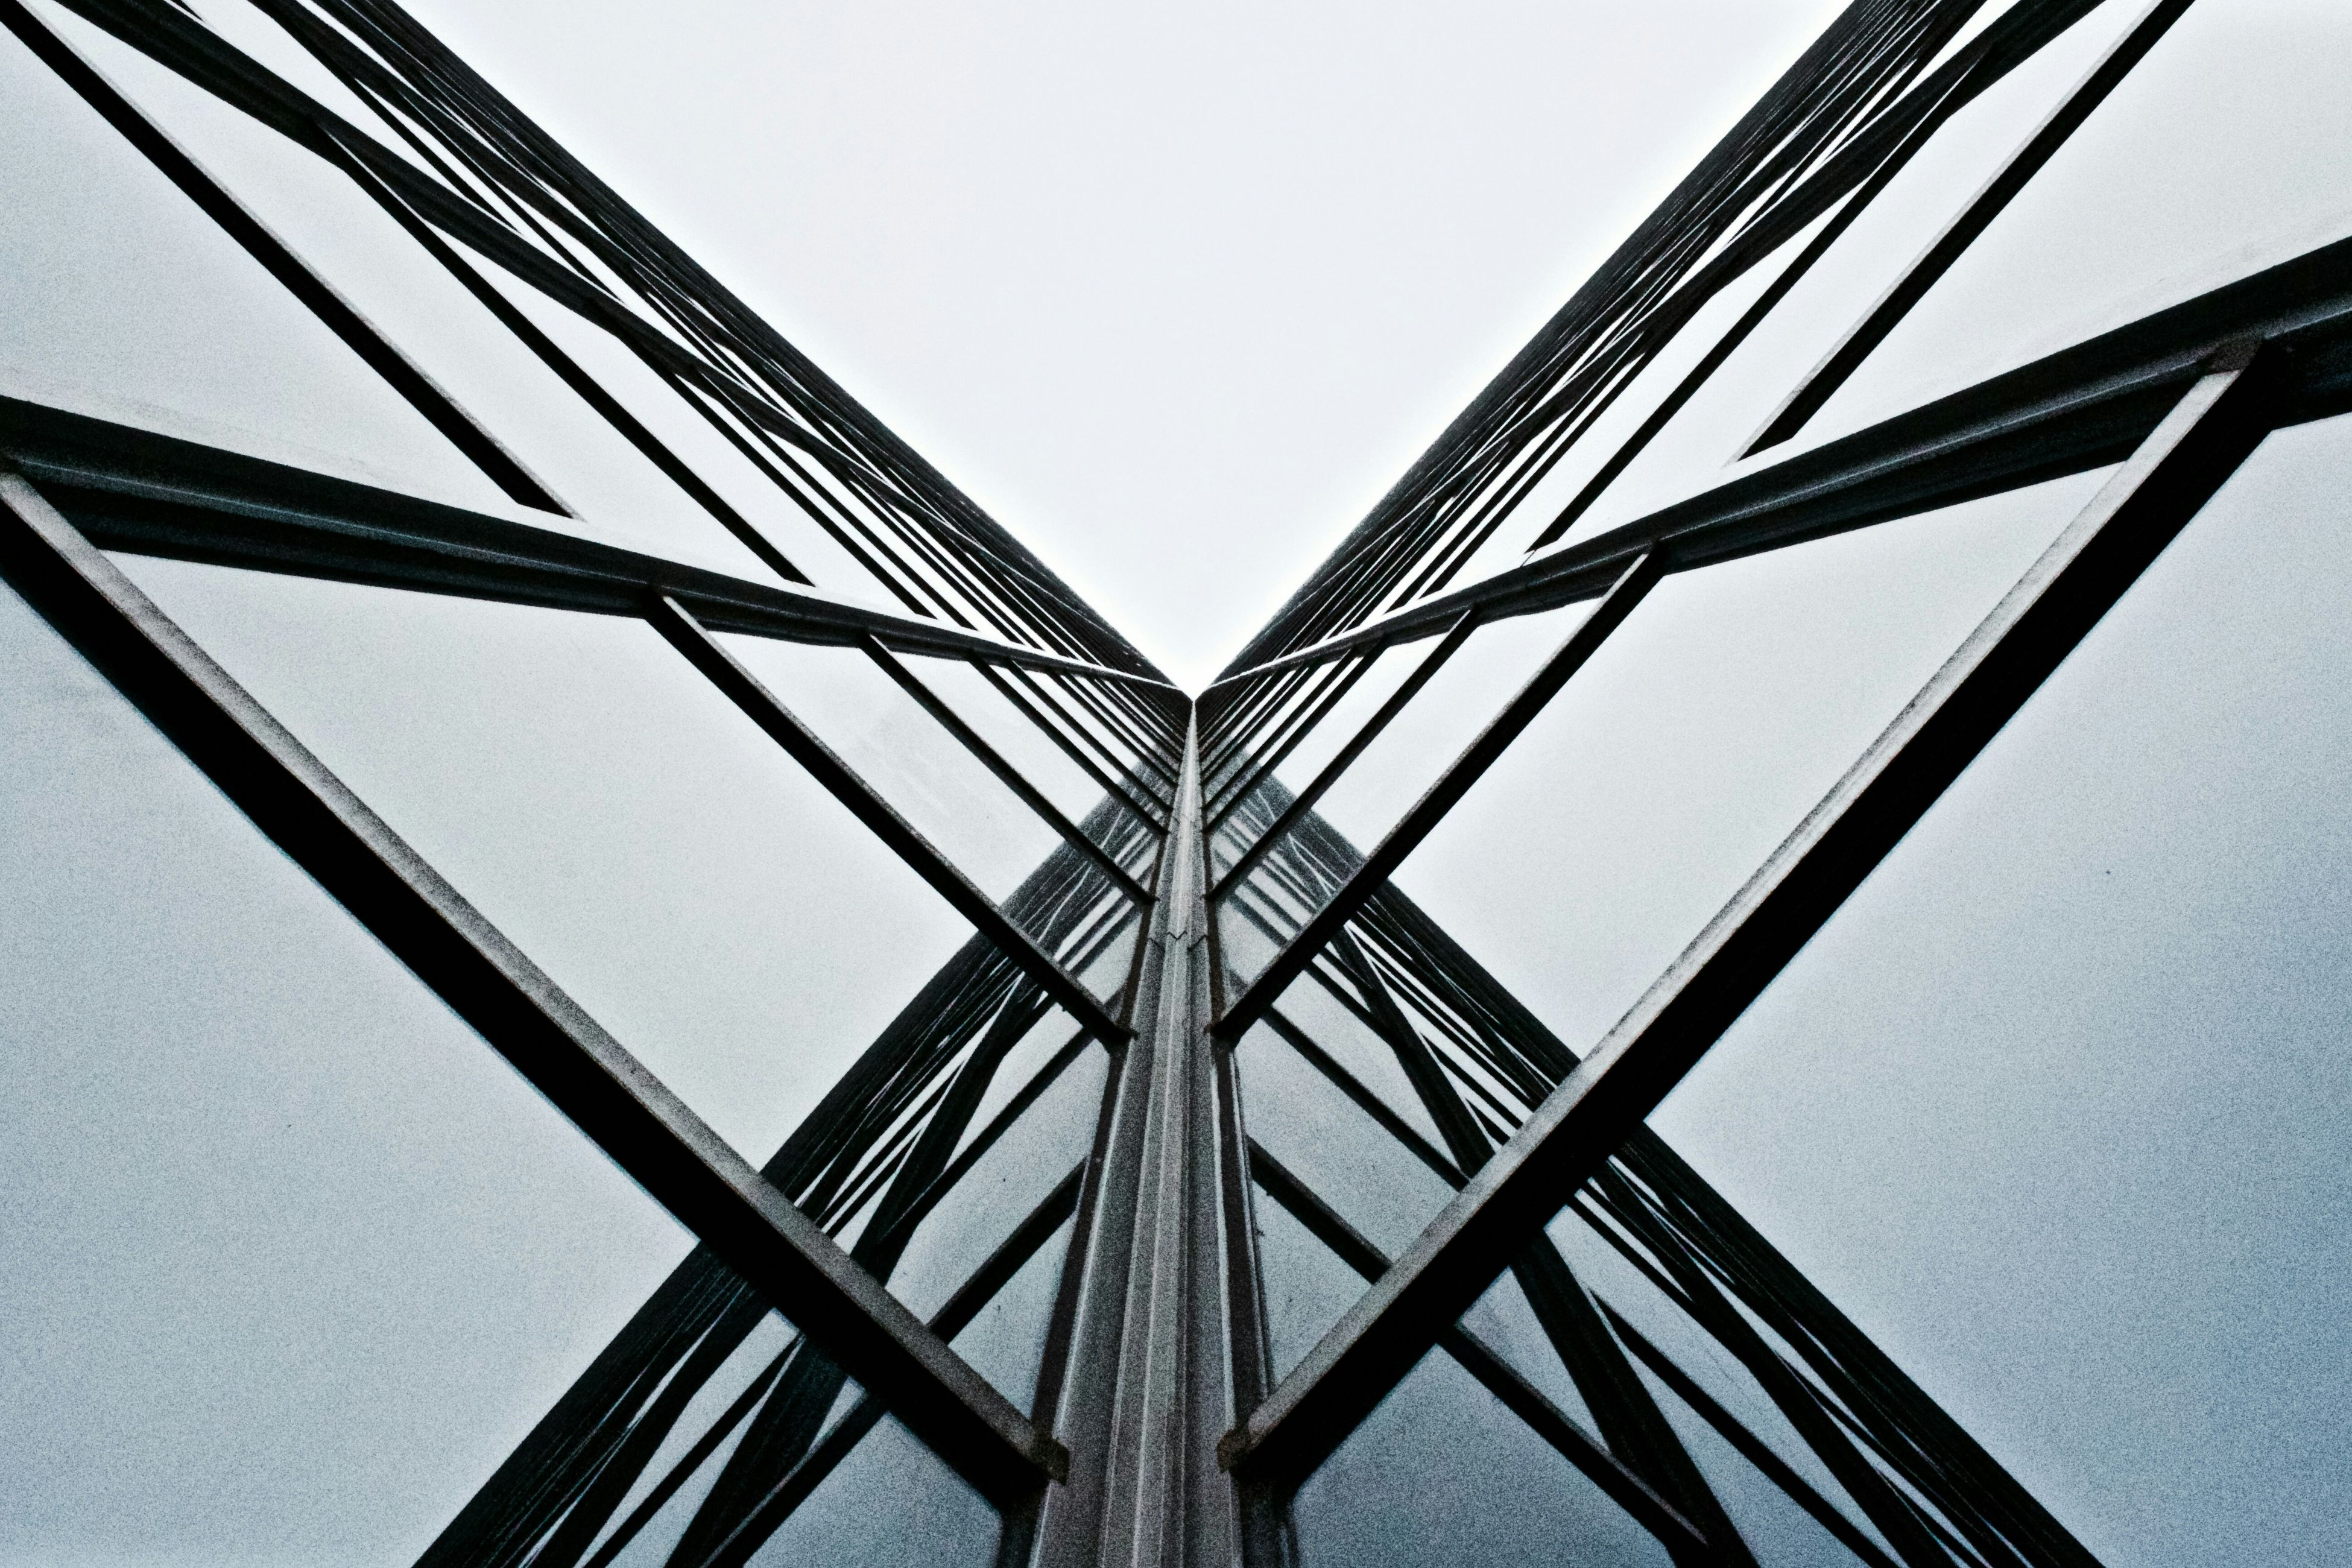 architecture, low angle view, built structure, building exterior, clear sky, modern, building, office building, tall - high, directly below, city, skyscraper, glass - material, tower, day, sky, outdoors, window, pattern, no people